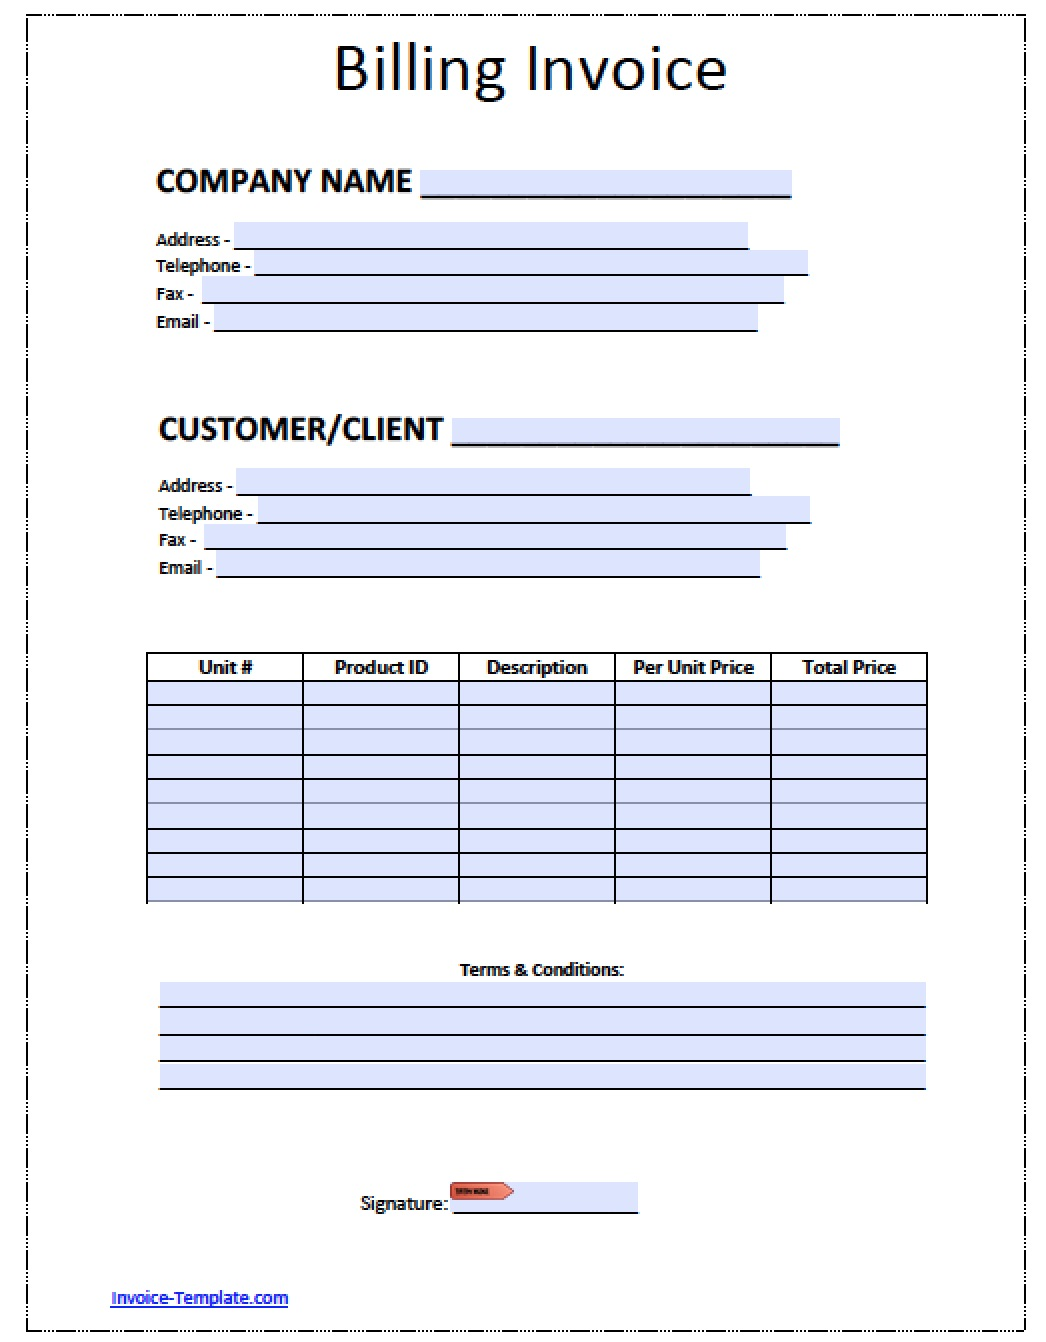 Amatospizzaus  Seductive Free Billing Invoice Template  Excel  Pdf  Word Doc With Excellent Billinginvoicetemplatewordpdf With Beautiful Performa Invoice Meaning Also Xero Delete Invoice In Addition Purchase Return Invoice Format And Dell Invoices As Well As Sample Email Invoice Additionally Void Invoice From Invoicetemplatecom With Amatospizzaus  Excellent Free Billing Invoice Template  Excel  Pdf  Word Doc With Beautiful Billinginvoicetemplatewordpdf And Seductive Performa Invoice Meaning Also Xero Delete Invoice In Addition Purchase Return Invoice Format From Invoicetemplatecom